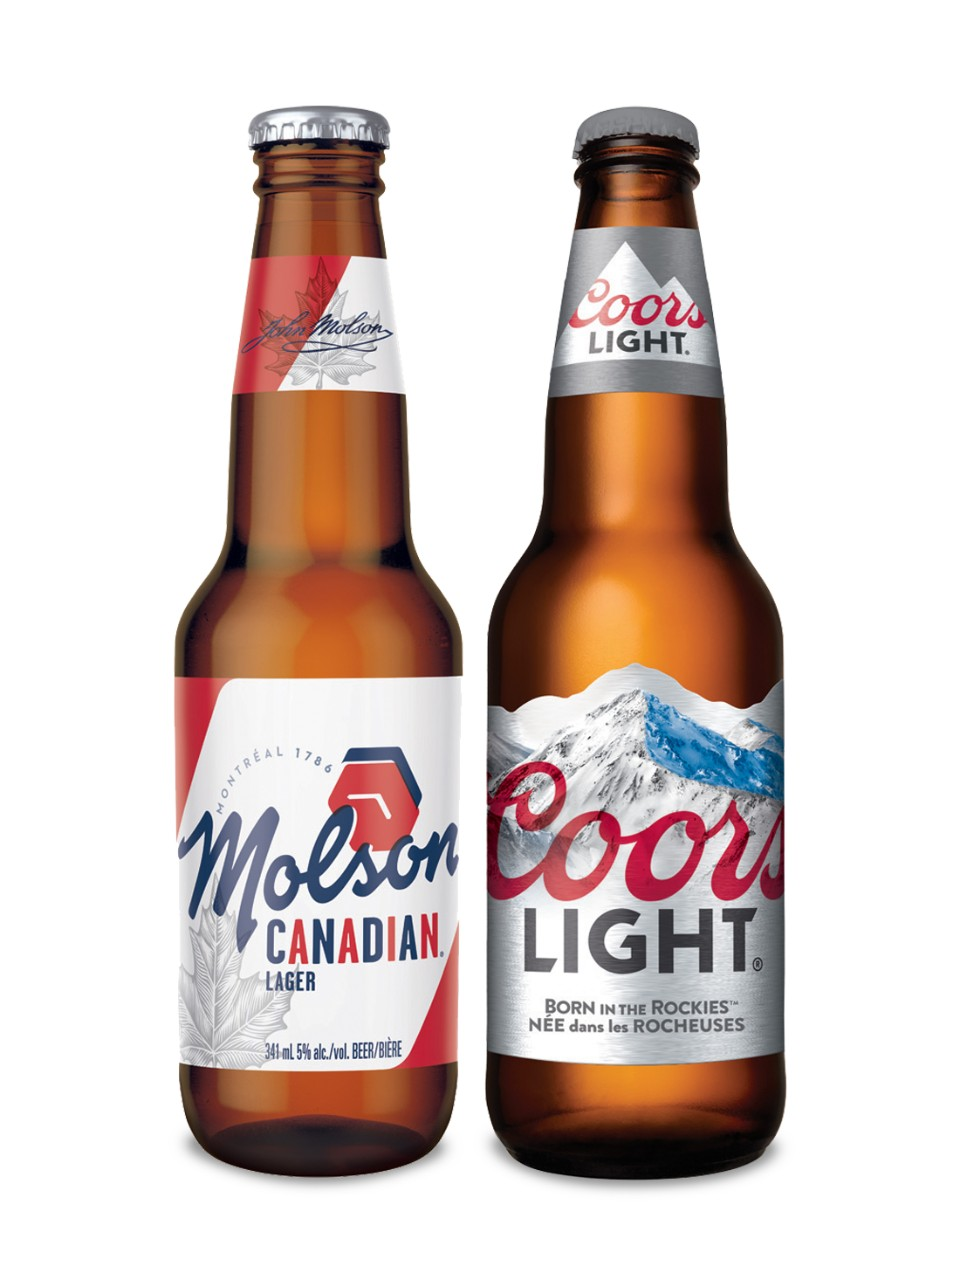 Molson Get2Gether (Canadian & Coors Light) from LCBO